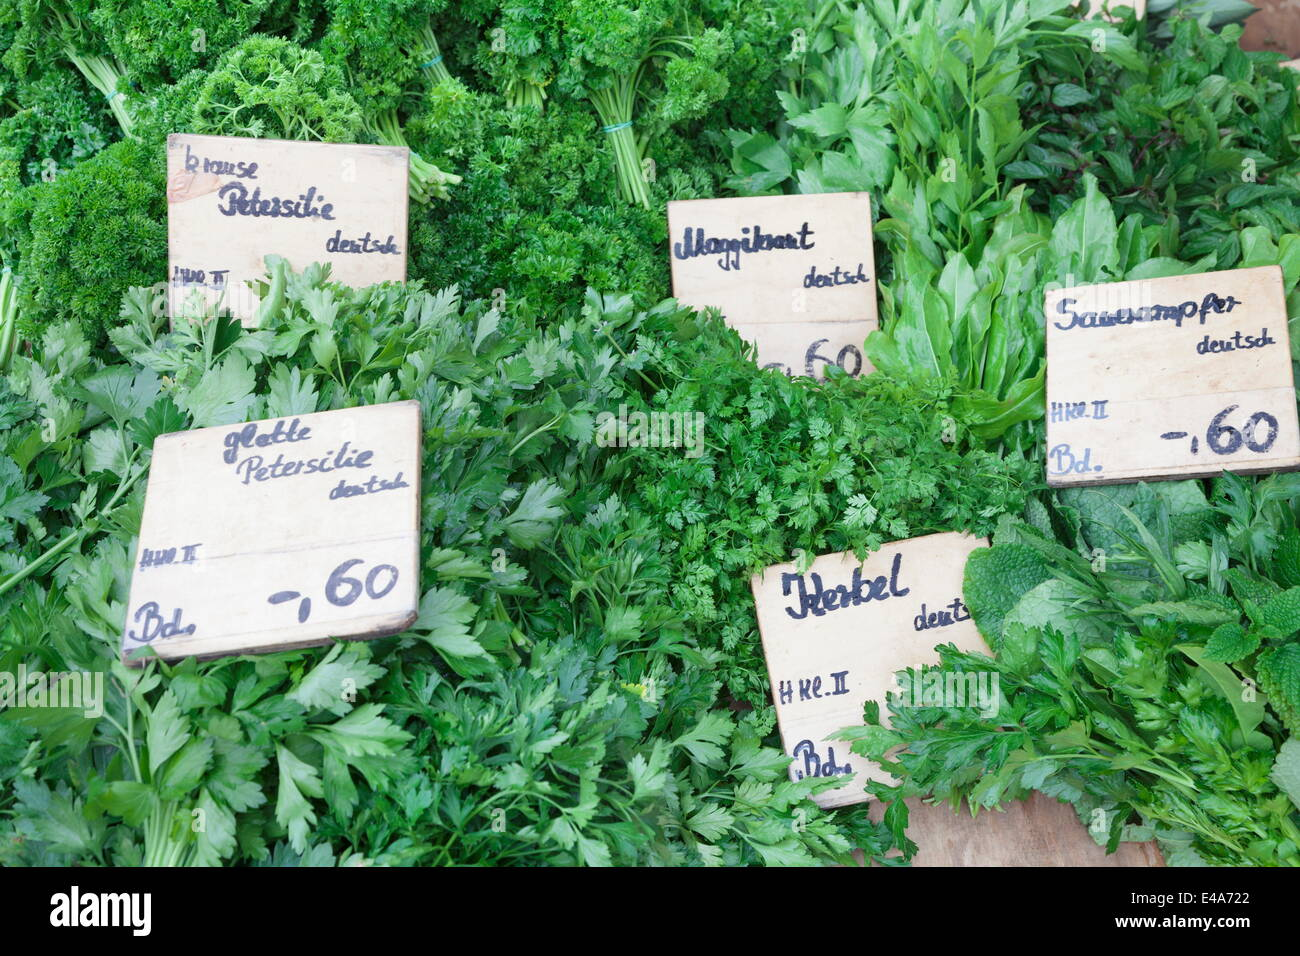 Fresh herbs at a market stall, weekly market, market place, Esslingen, Baden Wurttemberg, Germany, Europe - Stock Image